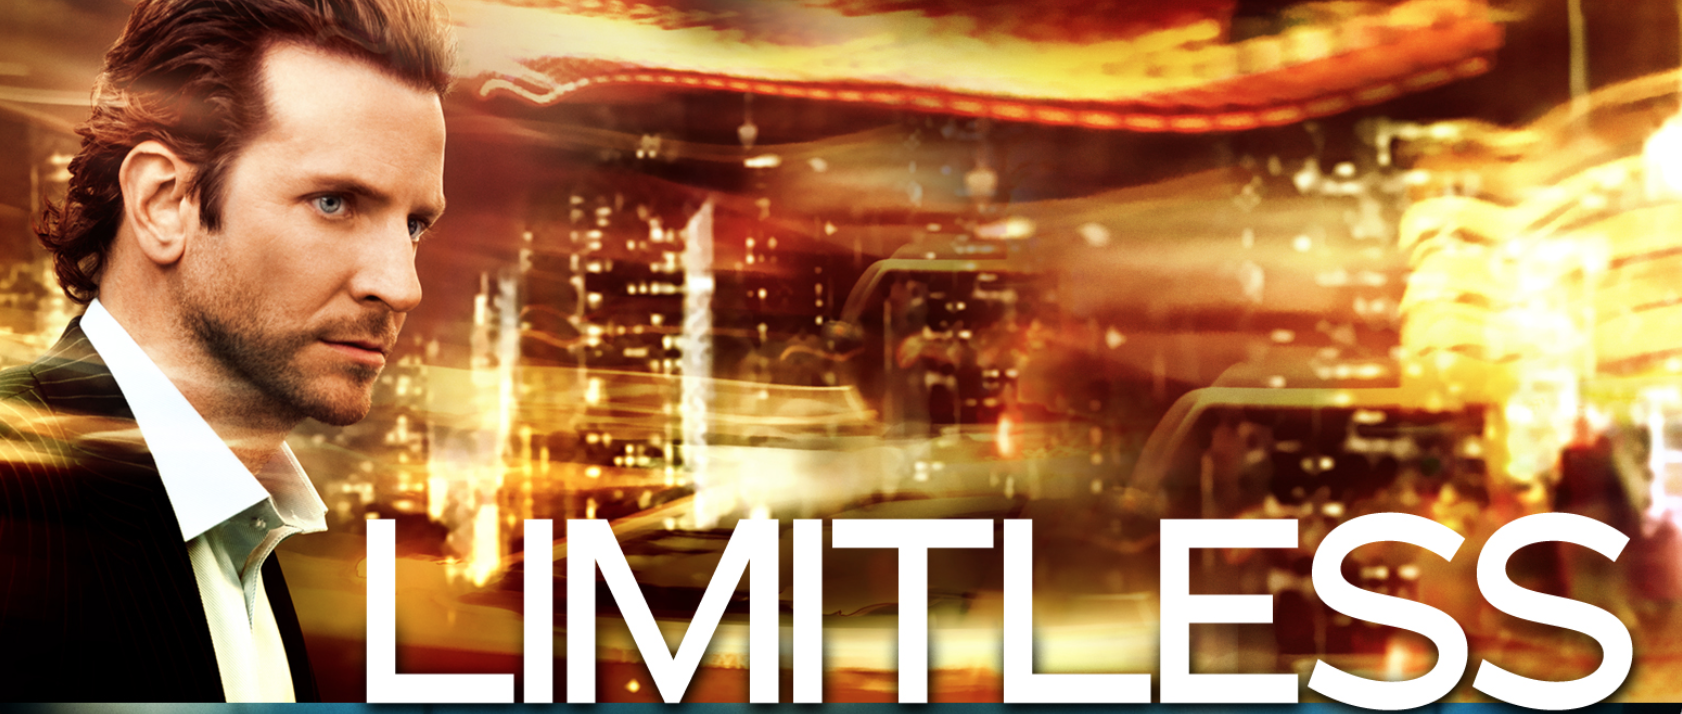 Limitless: The Infinite Possibilities of a Life Free from Alcohol